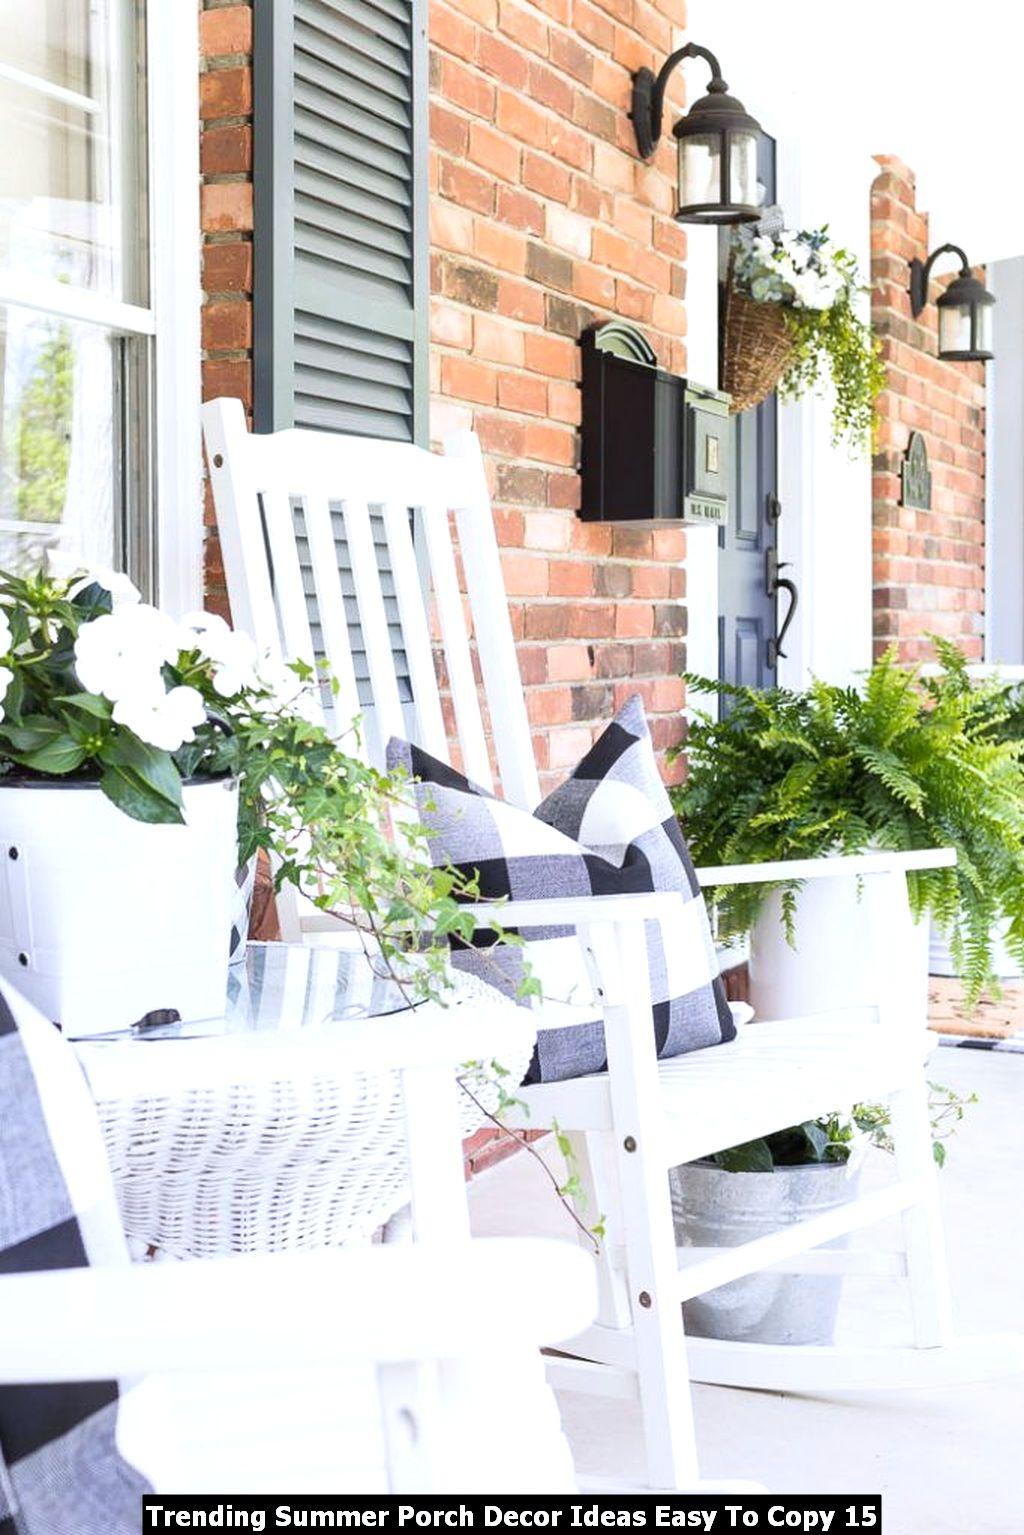 Trending Summer Porch Decor Ideas Easy To Copy 15